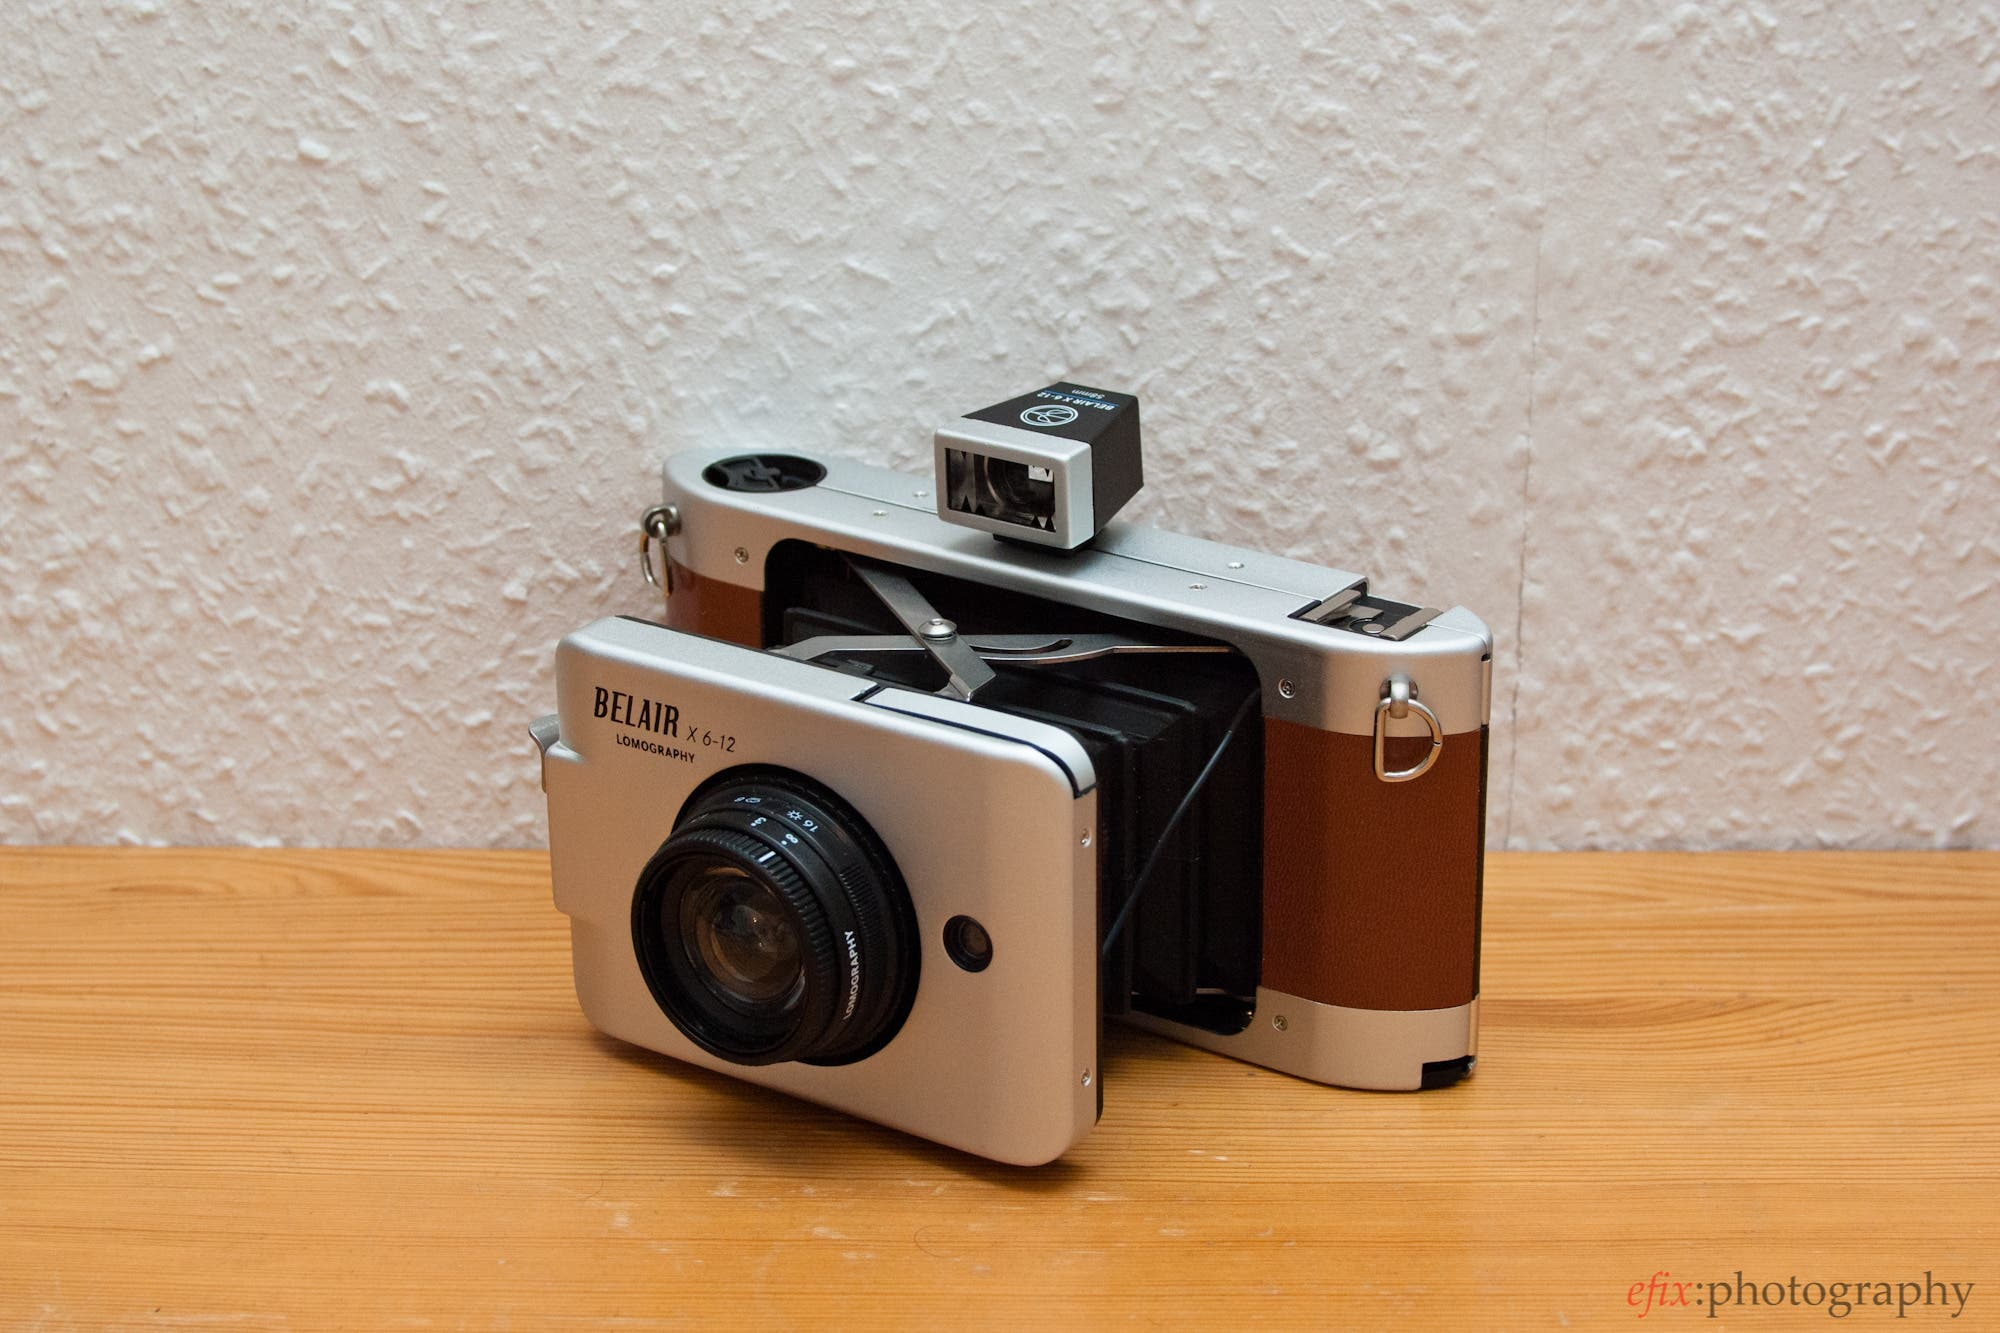 Review: Lomography Belair X 6-12 - The Phoblographer